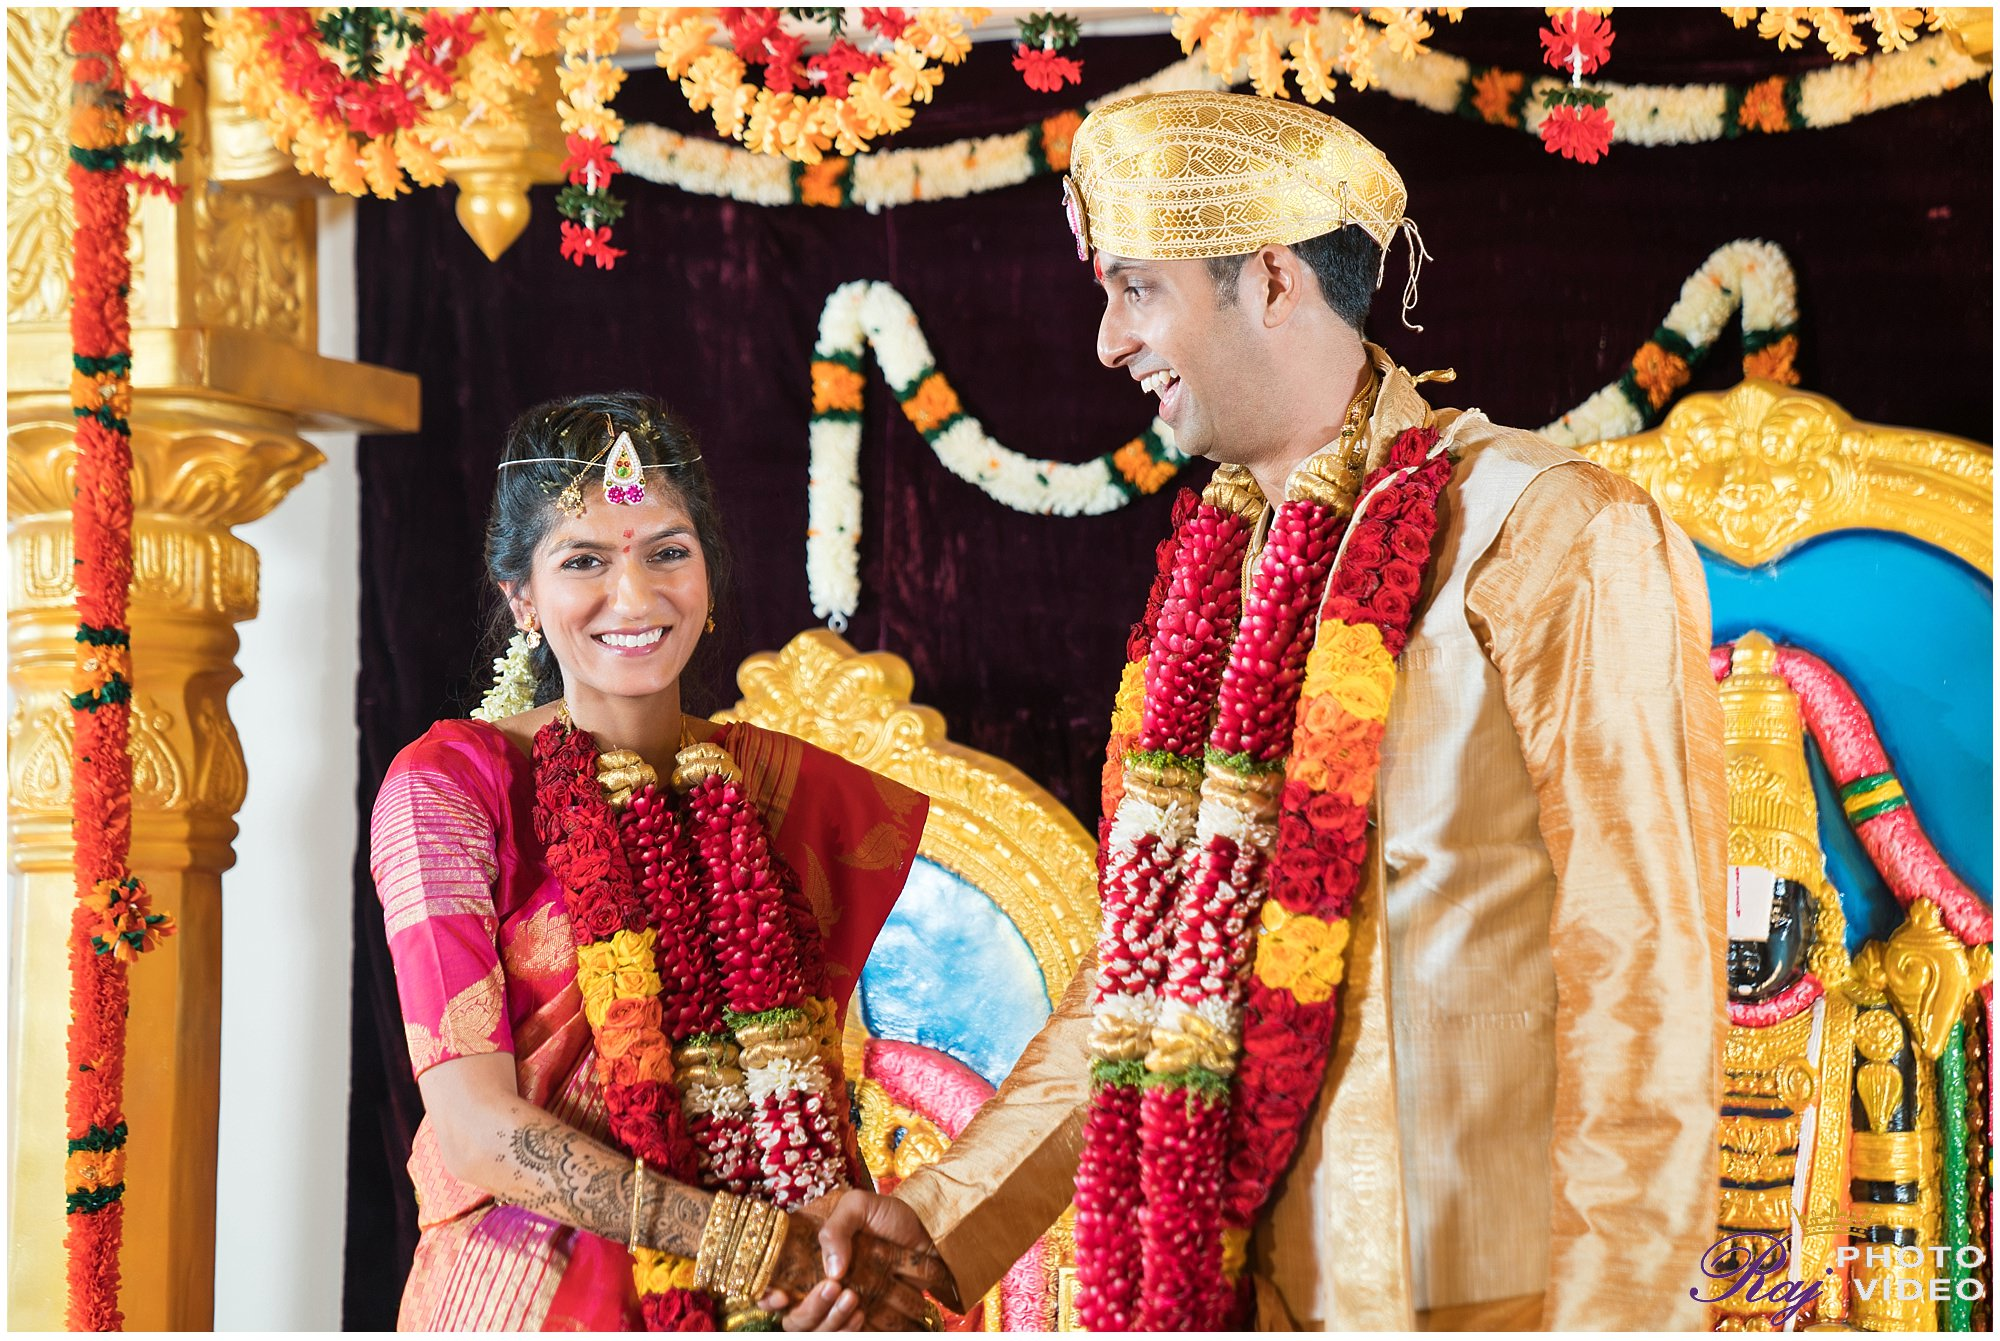 Sri_Venkata_Krishna_Kshetra_Temple_Tempe_Arizona_Indian_Wedding_Sapna_Shyam-13.jpg